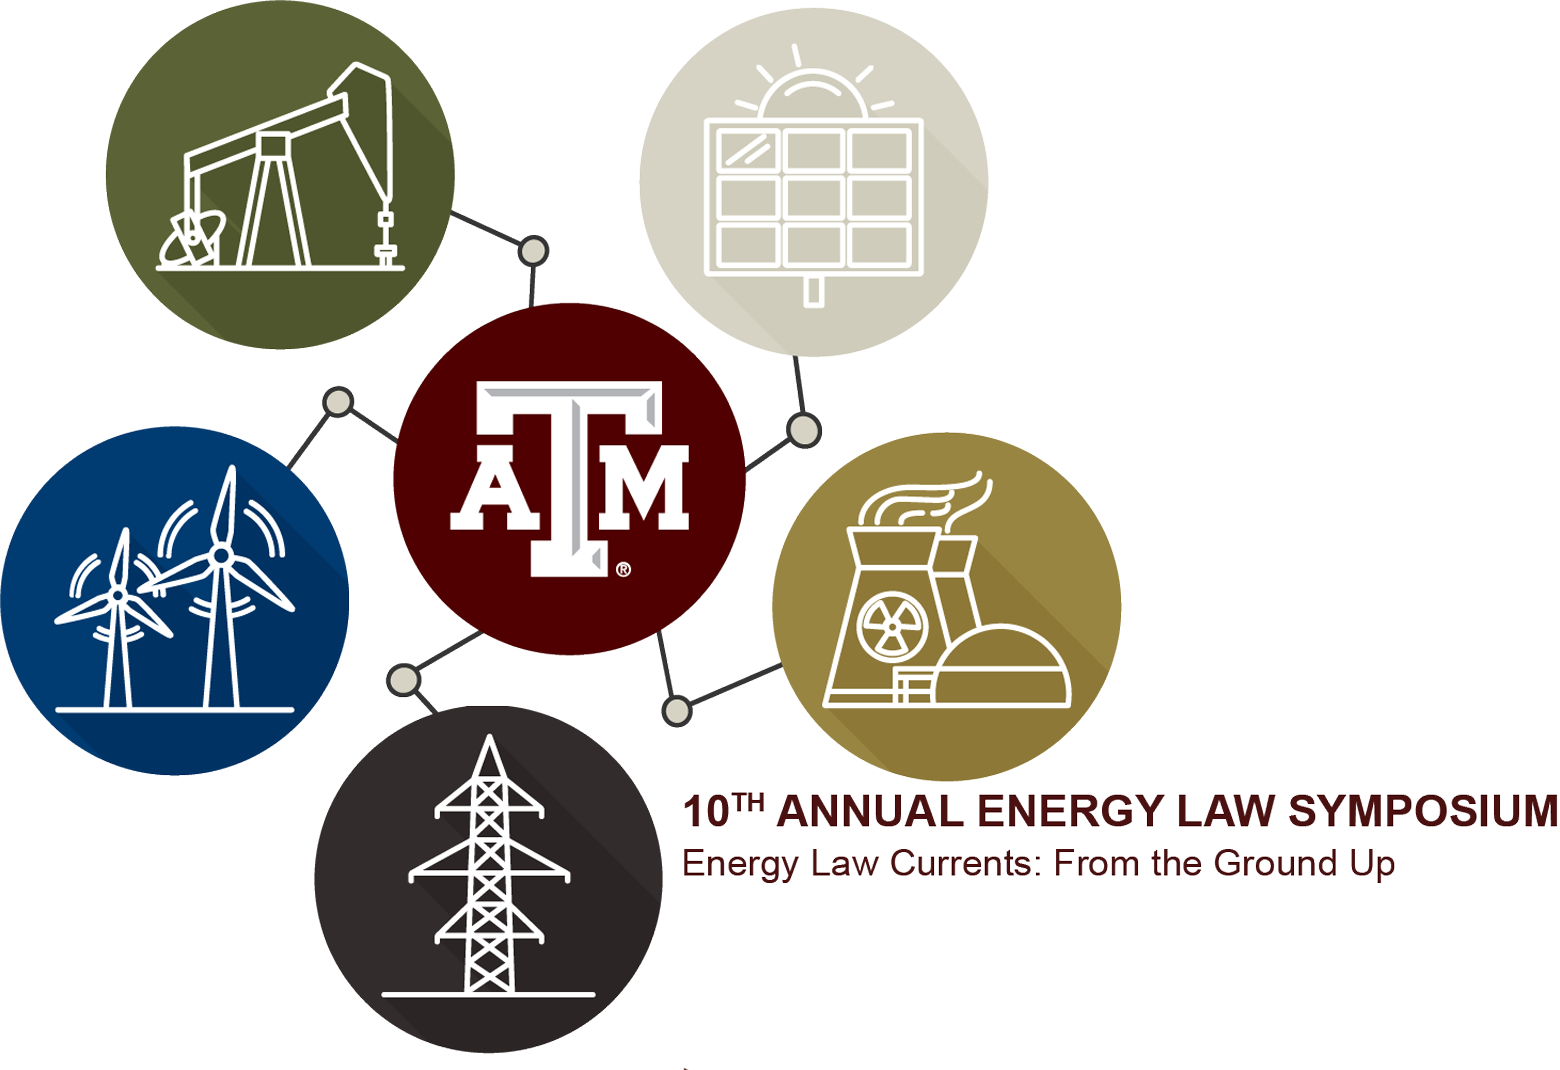 Energy Symposium Feb2019 logo